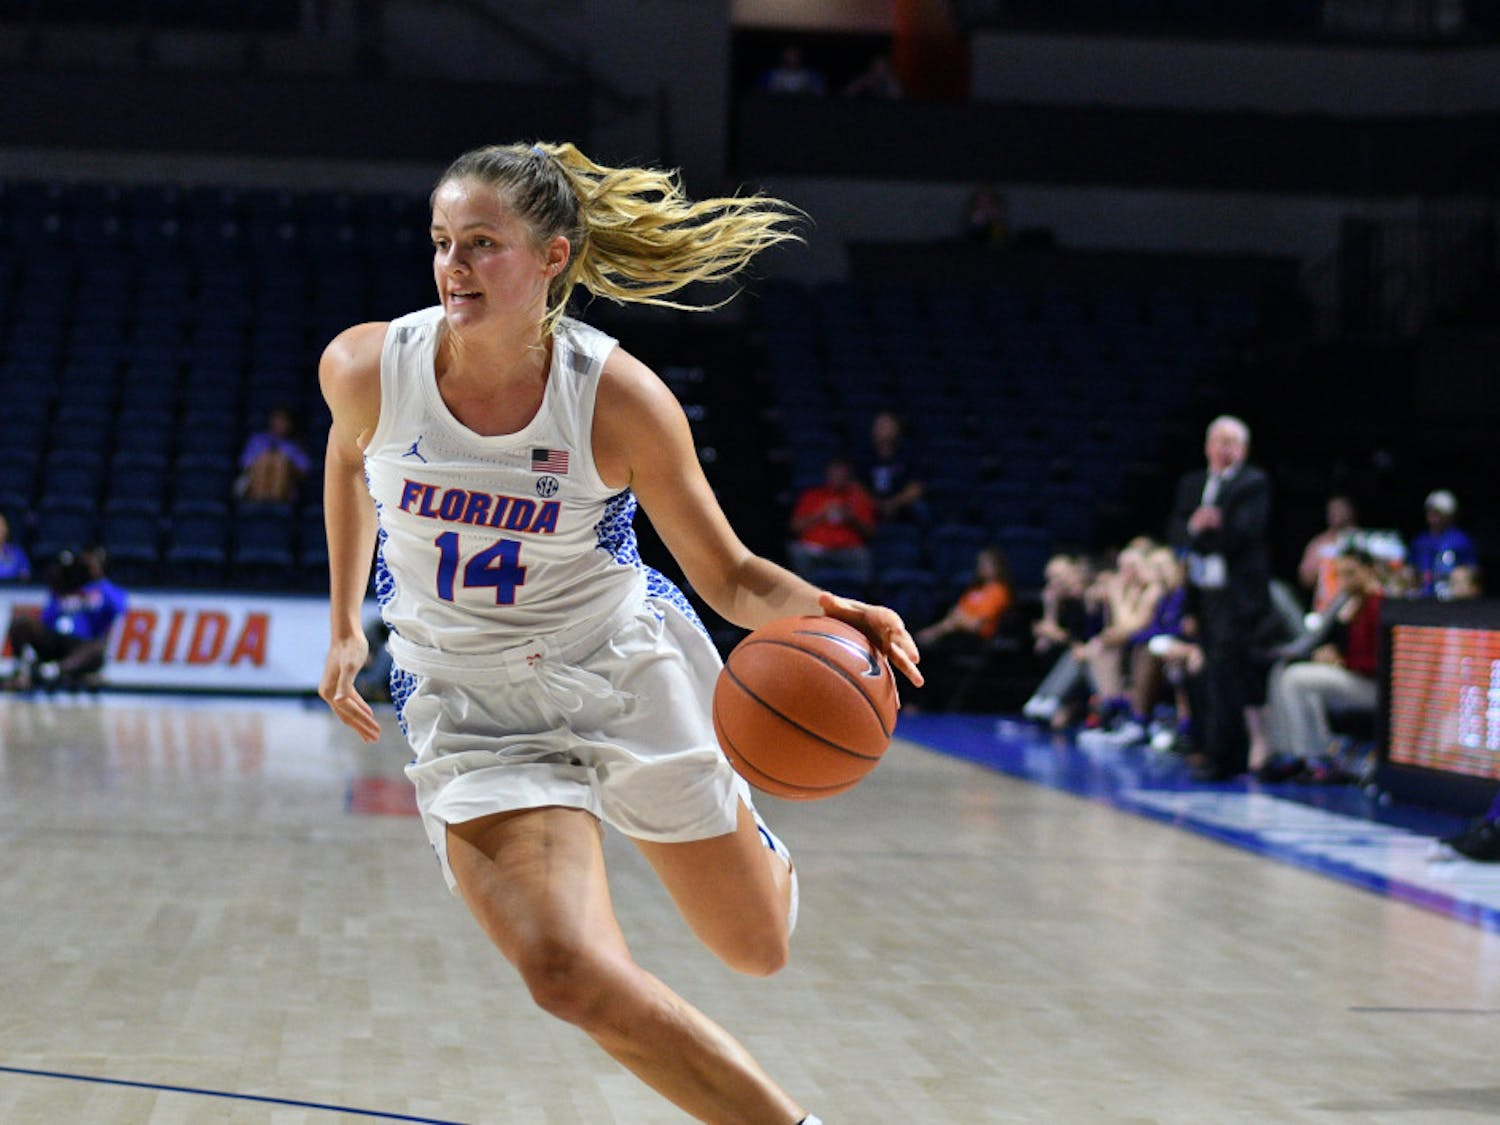 UF guard Kristina Moore suffered a broken arm on Jan. 27 in the Gators' women's basketball game against Arkansas.